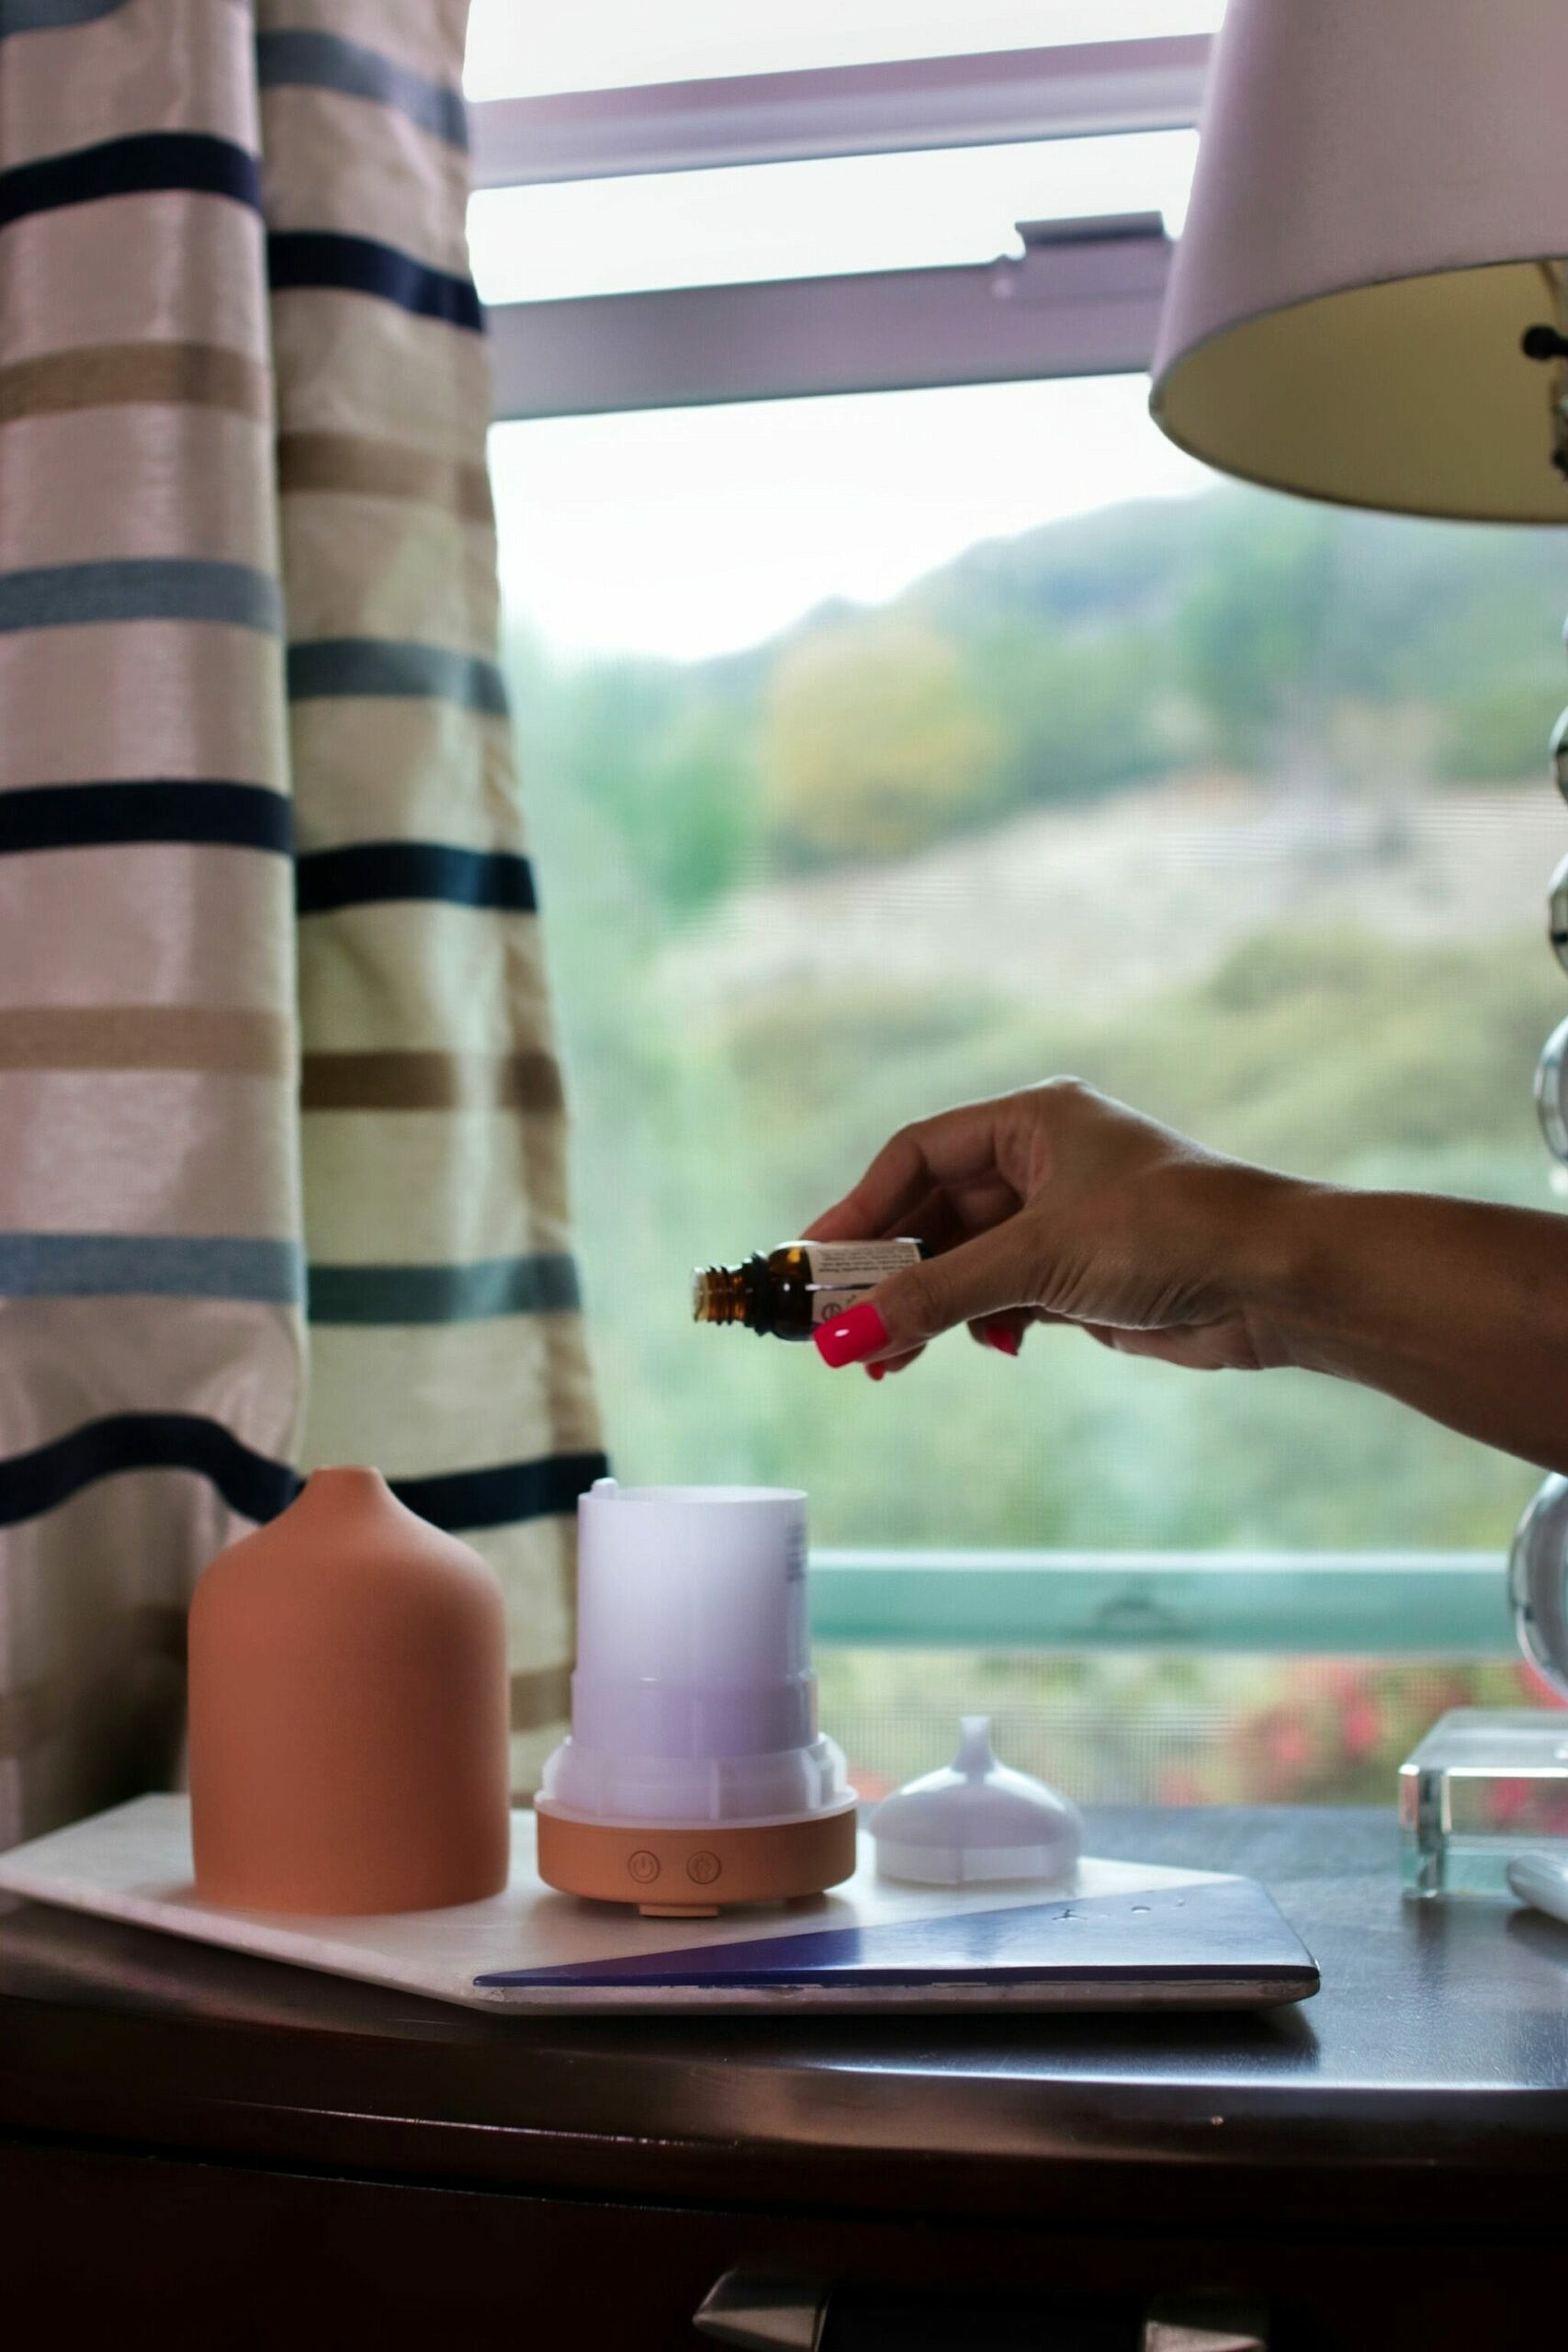 Ajna Wellbeing Ceramic Diffusers for Essential Oils